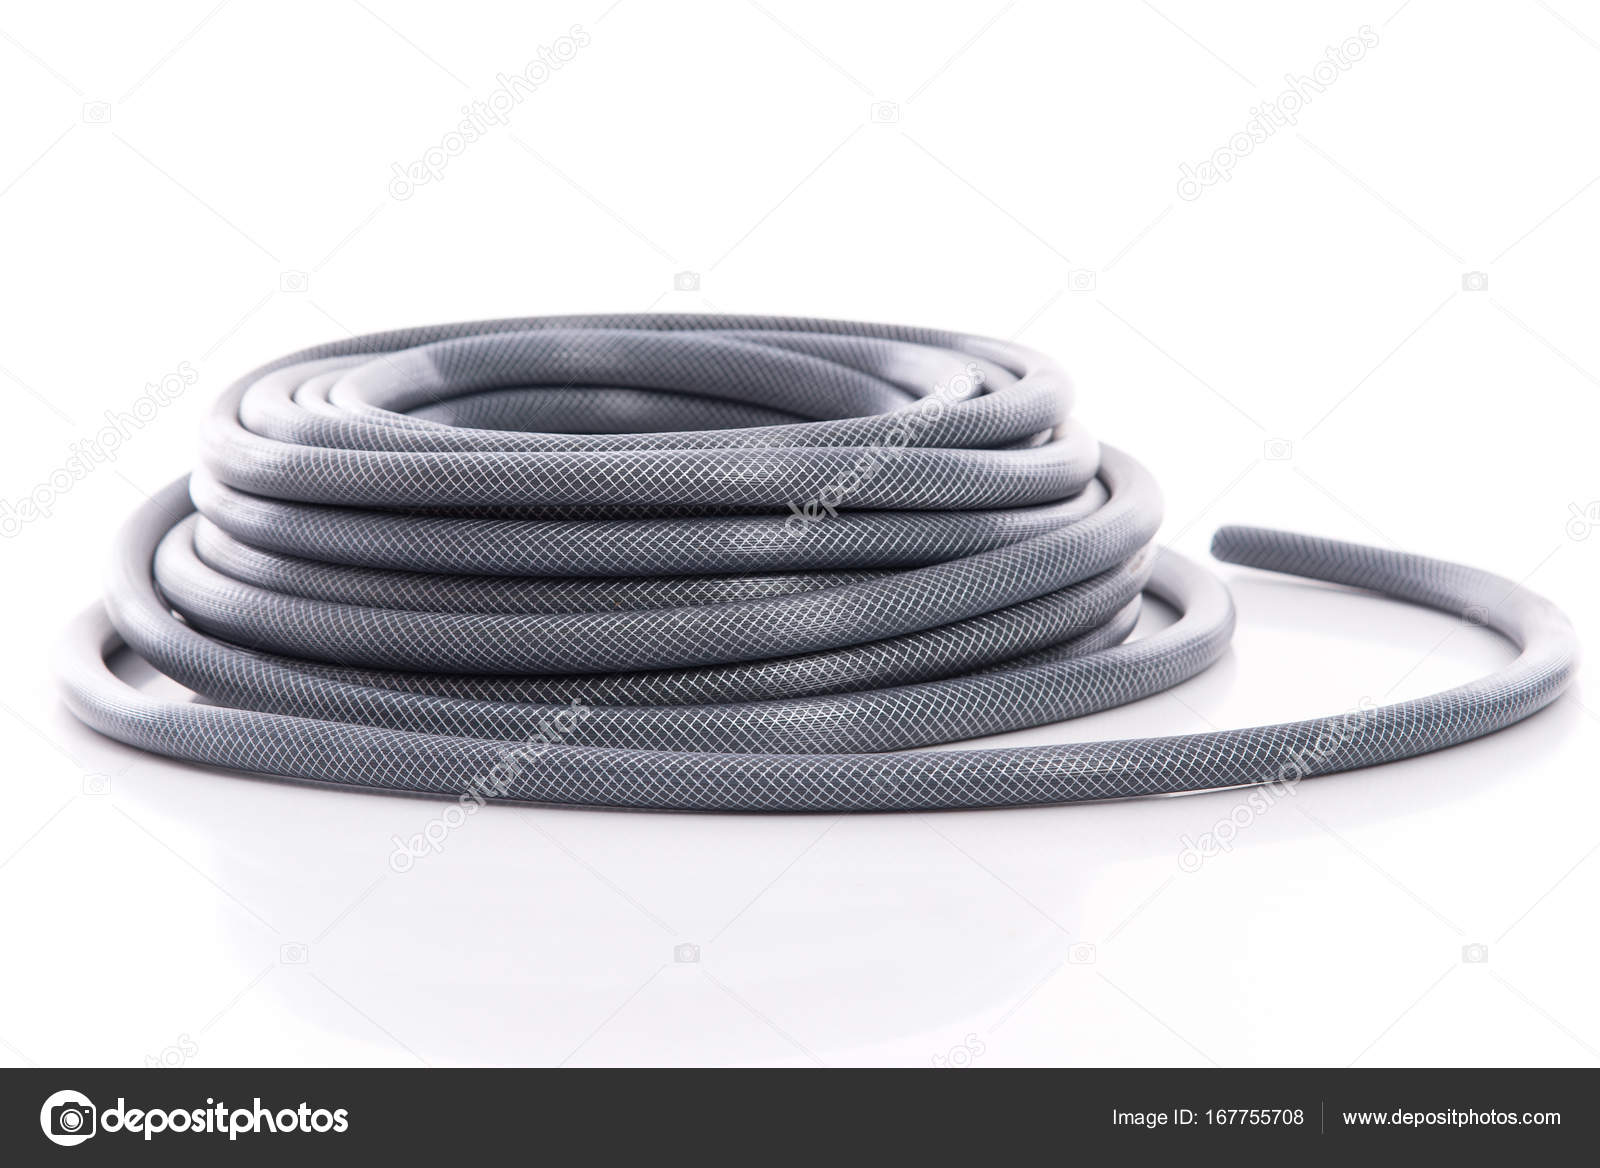 Curled Garden Hose Isolated On White Background U2014 Photo By Lufimorgan